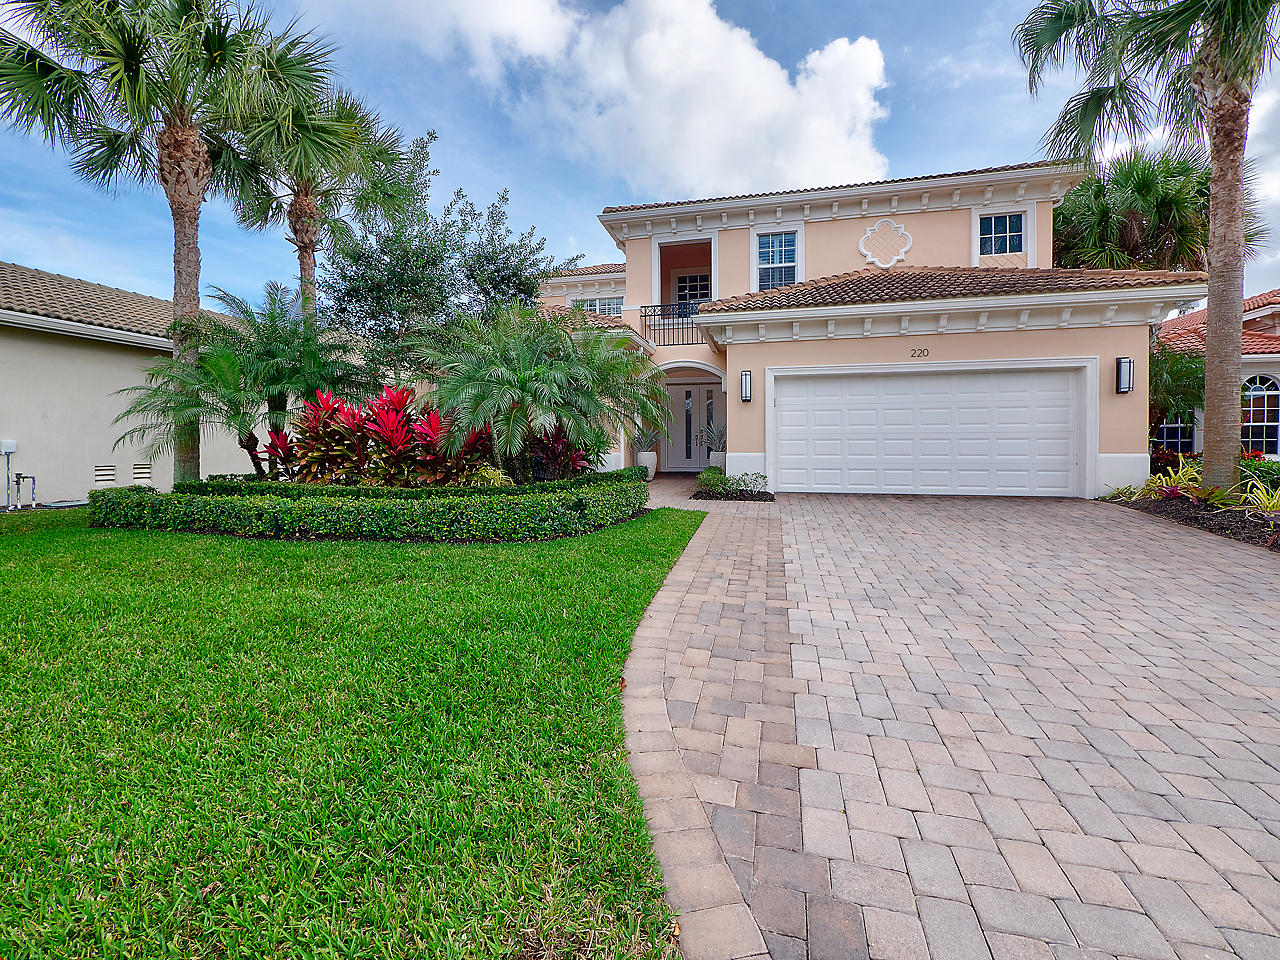 New Home for sale at 220 Carina Drive in Jupiter